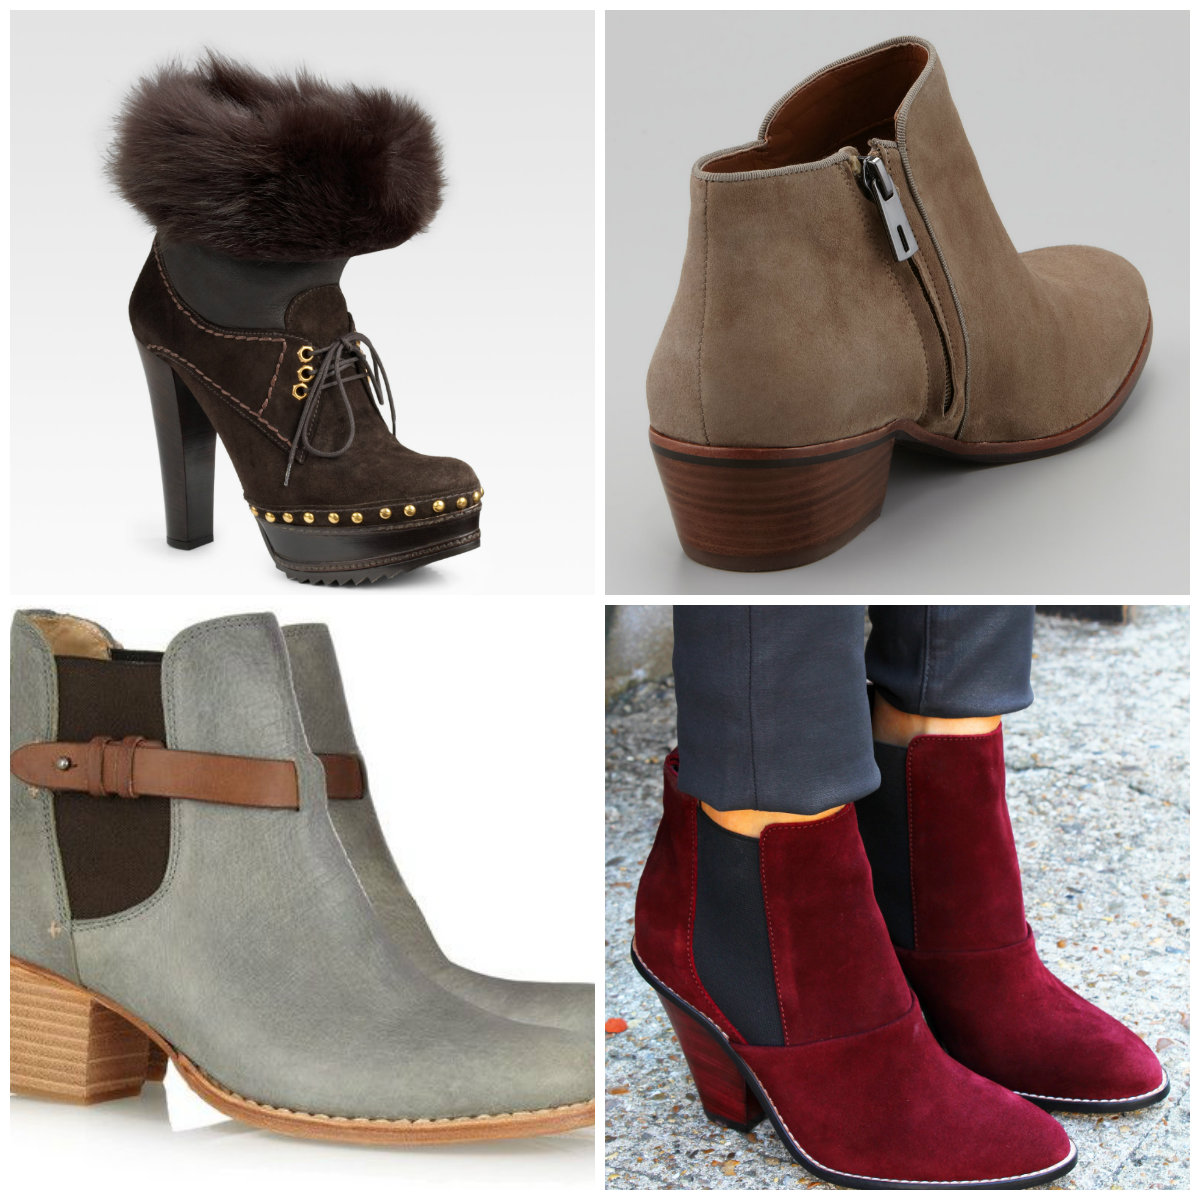 Ankle Boots For Girls ViVSdKEy